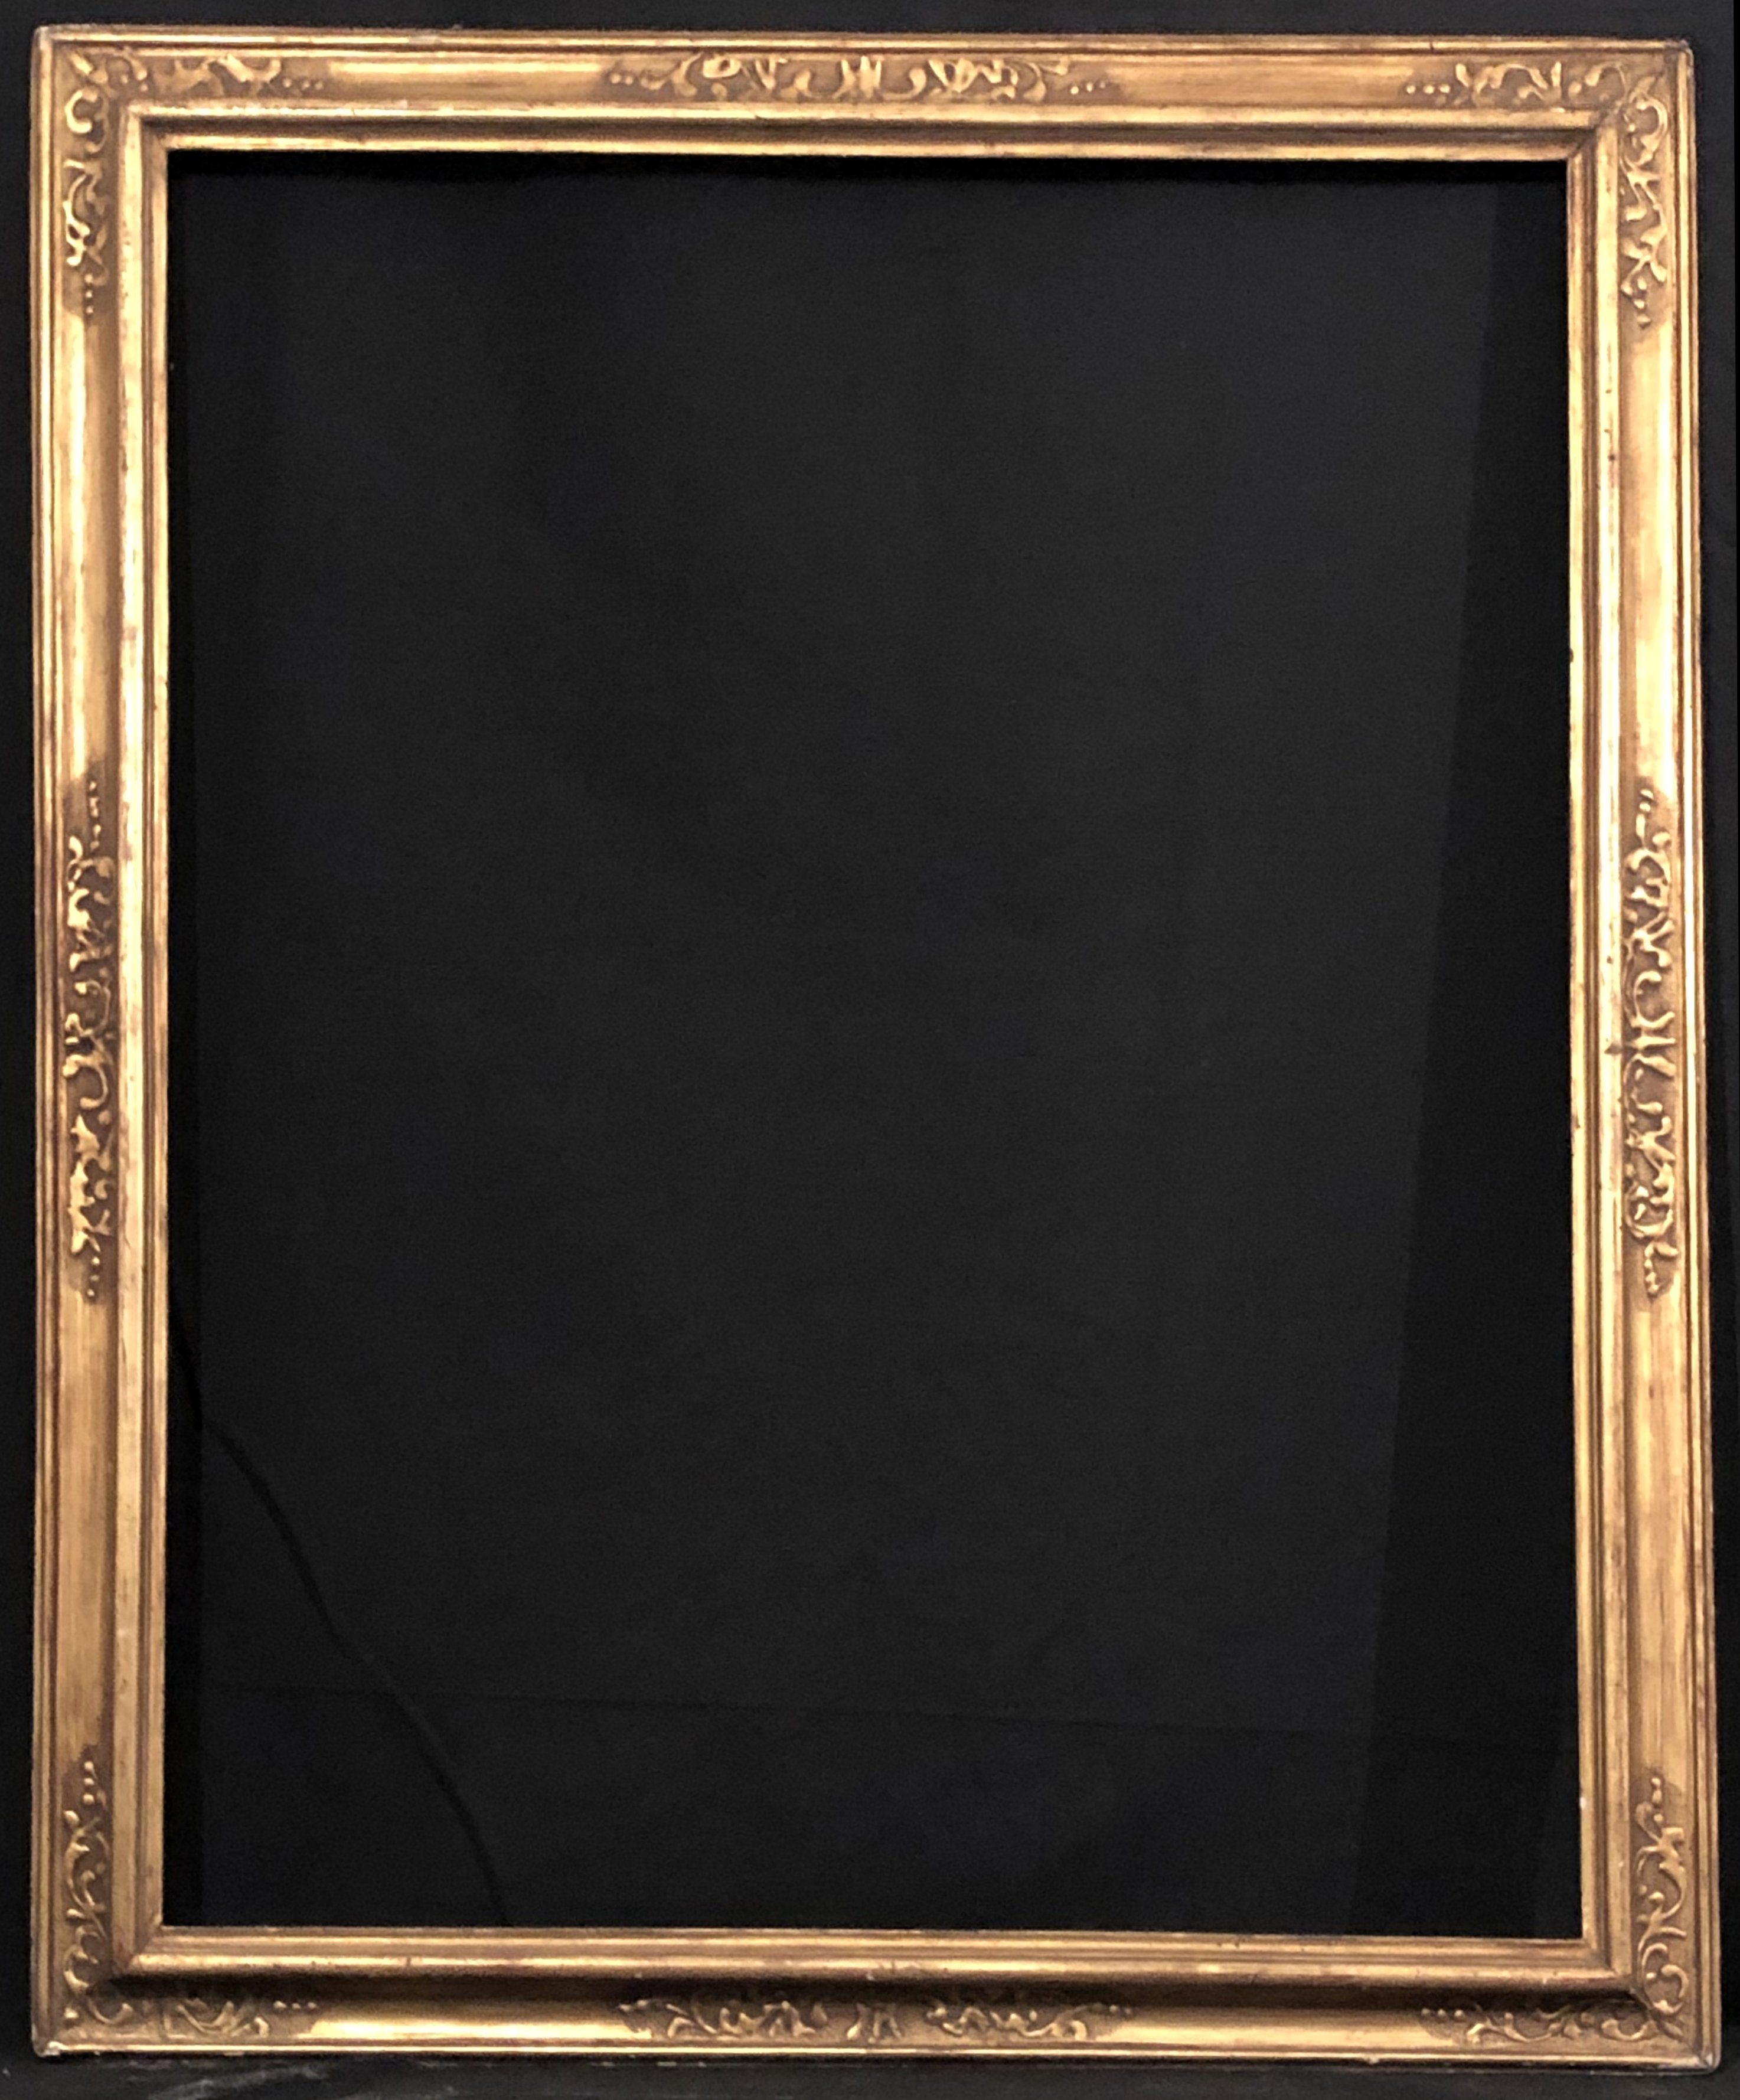 Louis XV frame - Contact for price